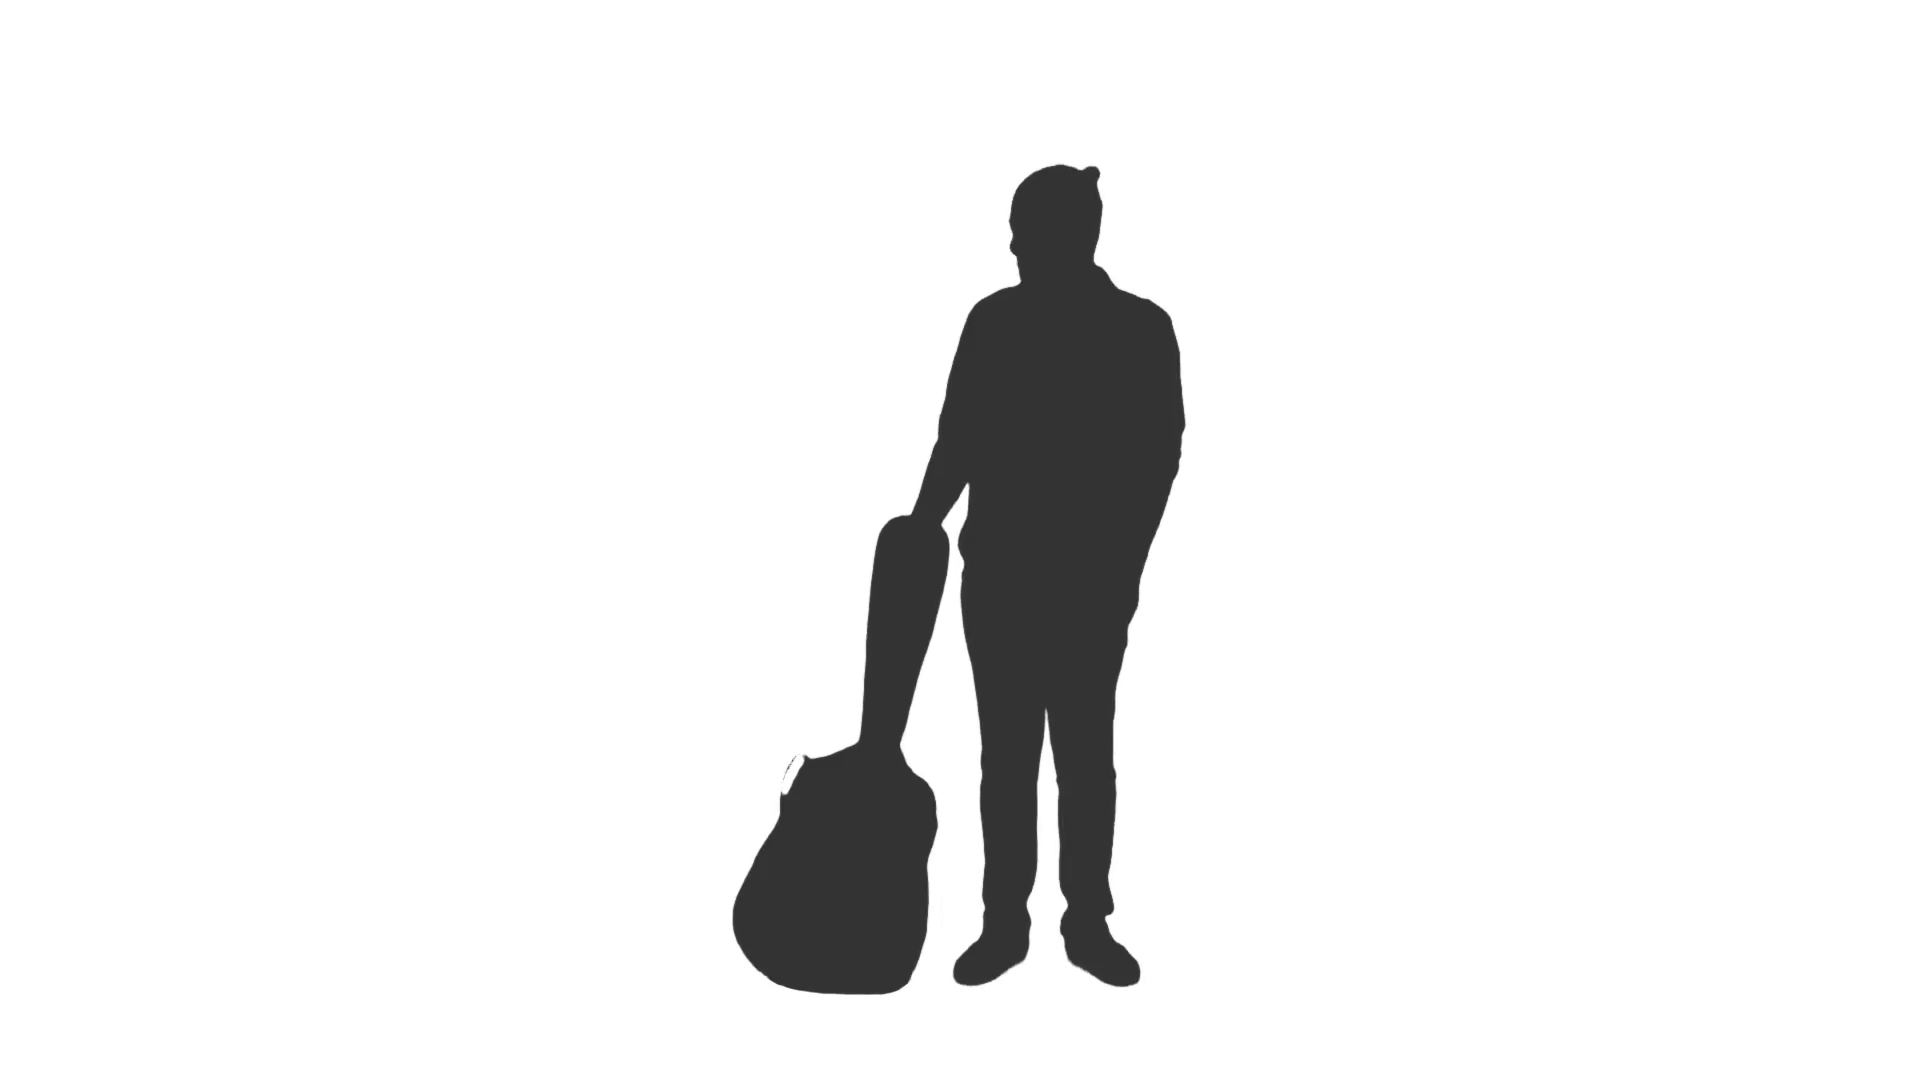 1920x1080 Silhouette Of A Young Man Walking With A Guitar. Side View. Full